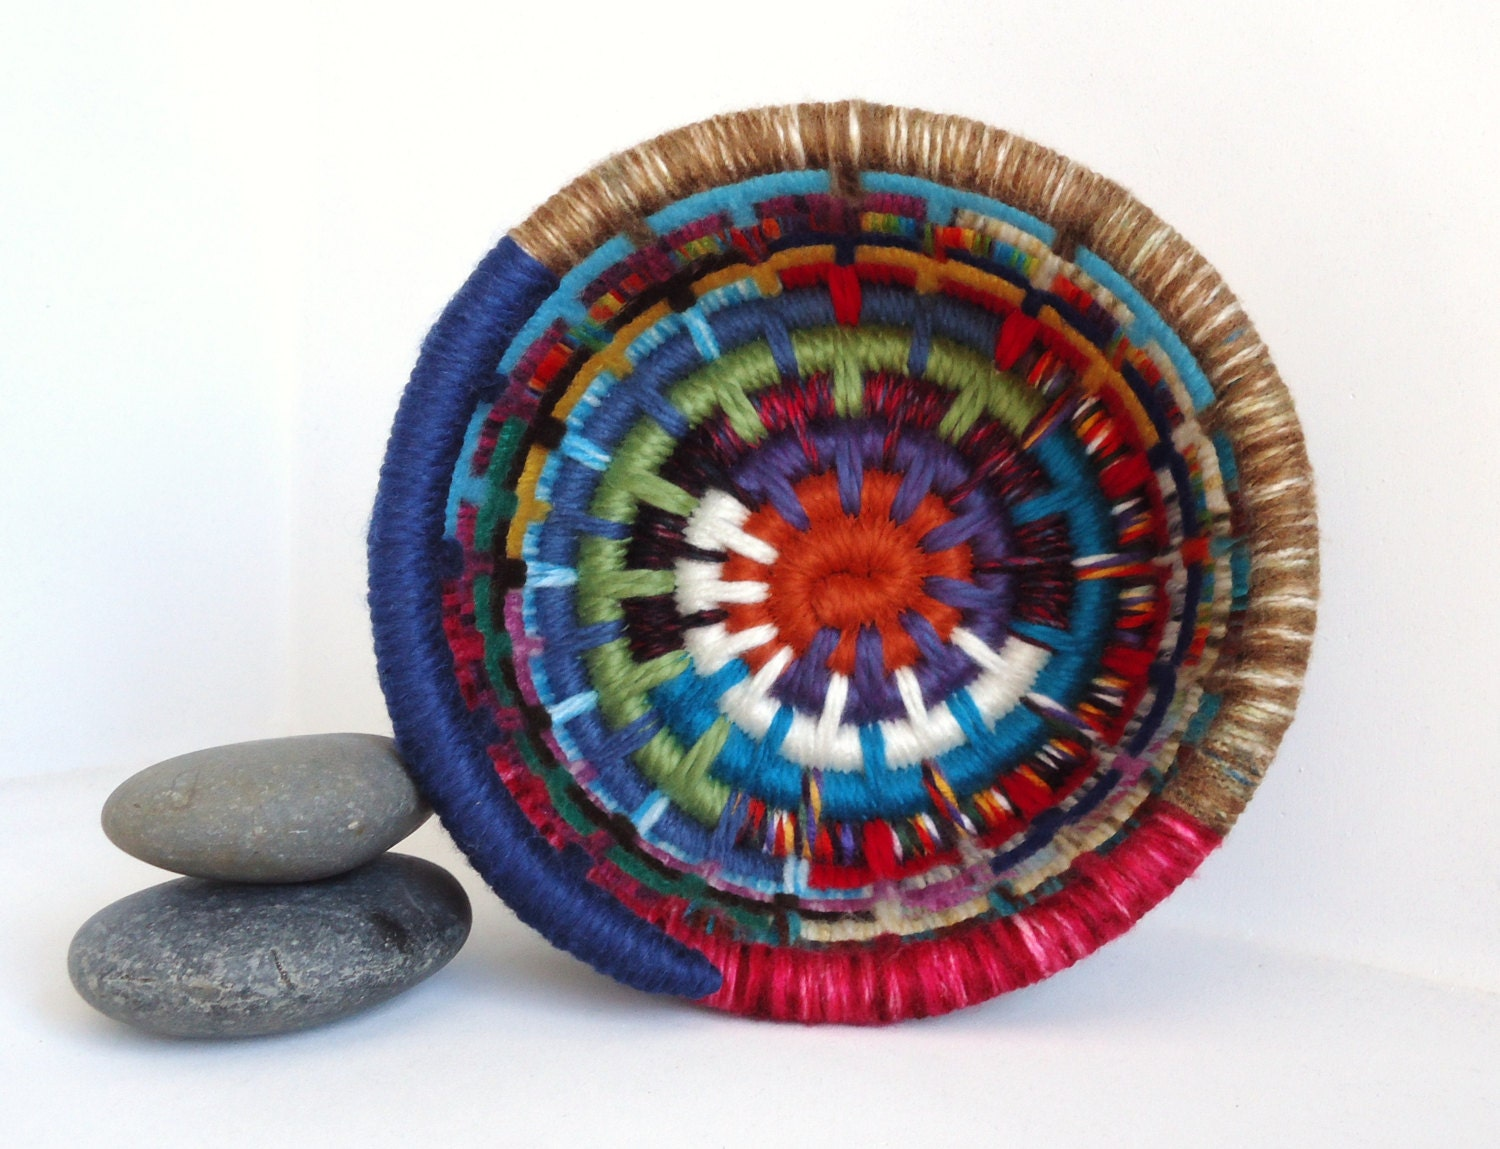 Coil Basket Weaving Patterns : Yarn coiled basket multicolored storage by jcstars